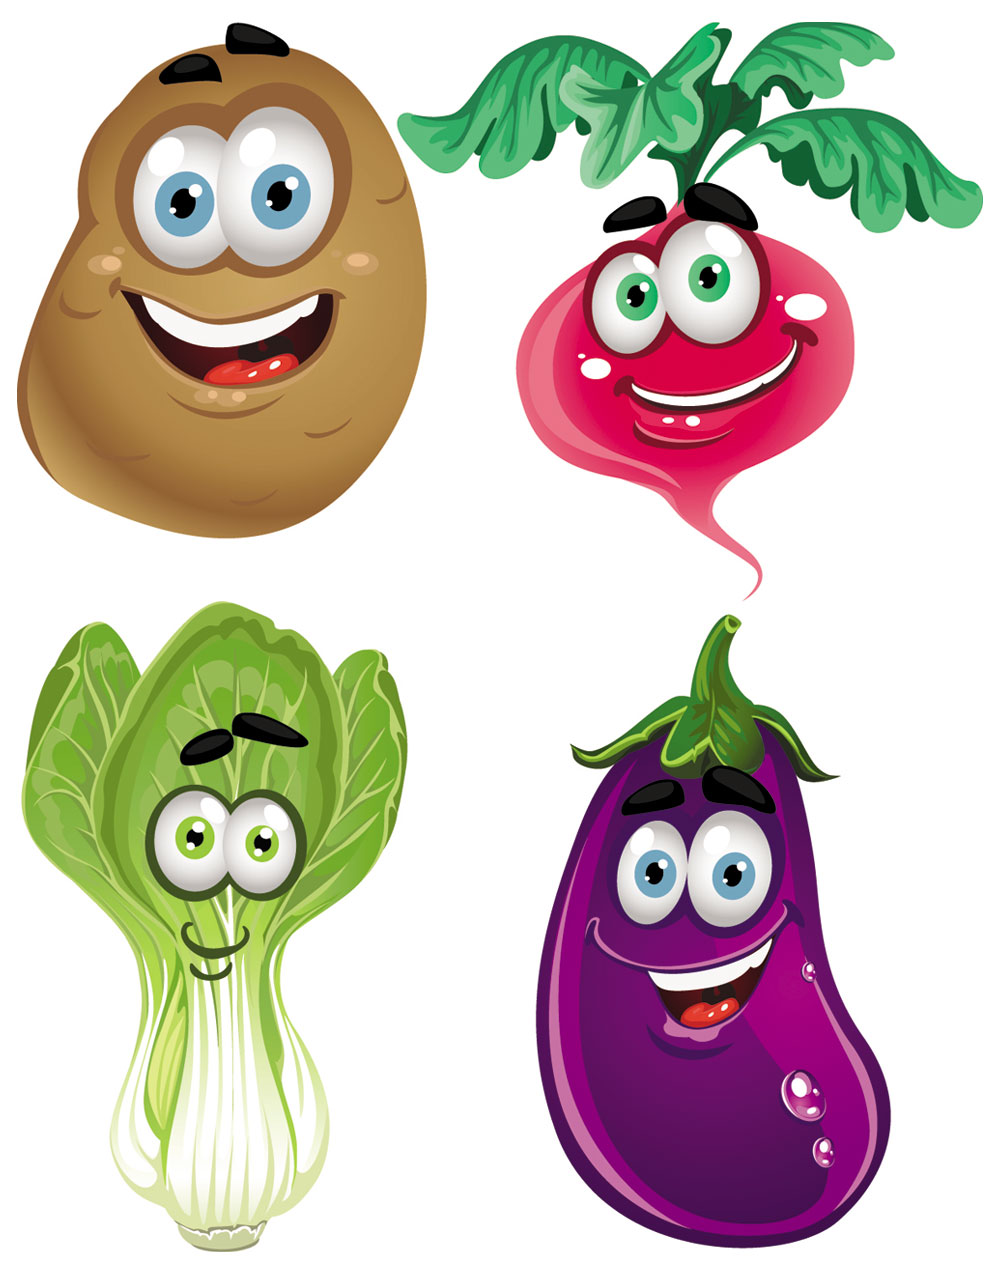 fruits and vegetables clipart clipart panda free clipart images rh clipartpanda com fruit and veggie clipart fruit and vegetable clip art pictures